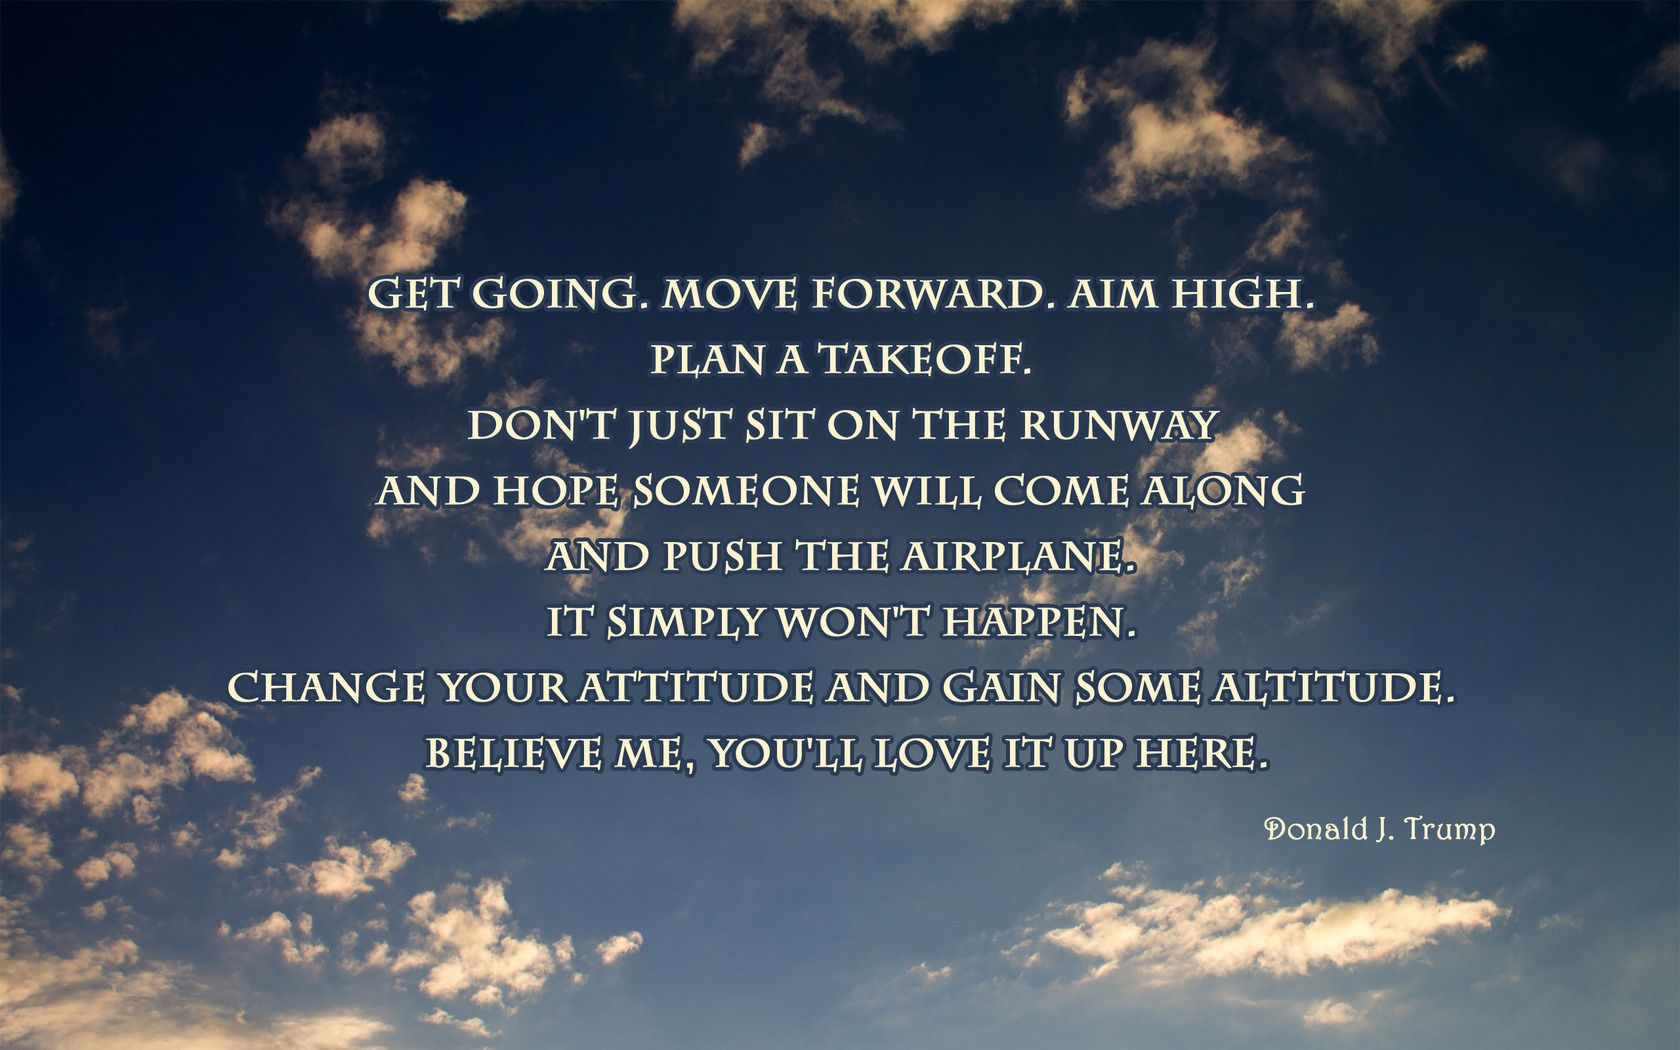 going move forward aim high moving on quote